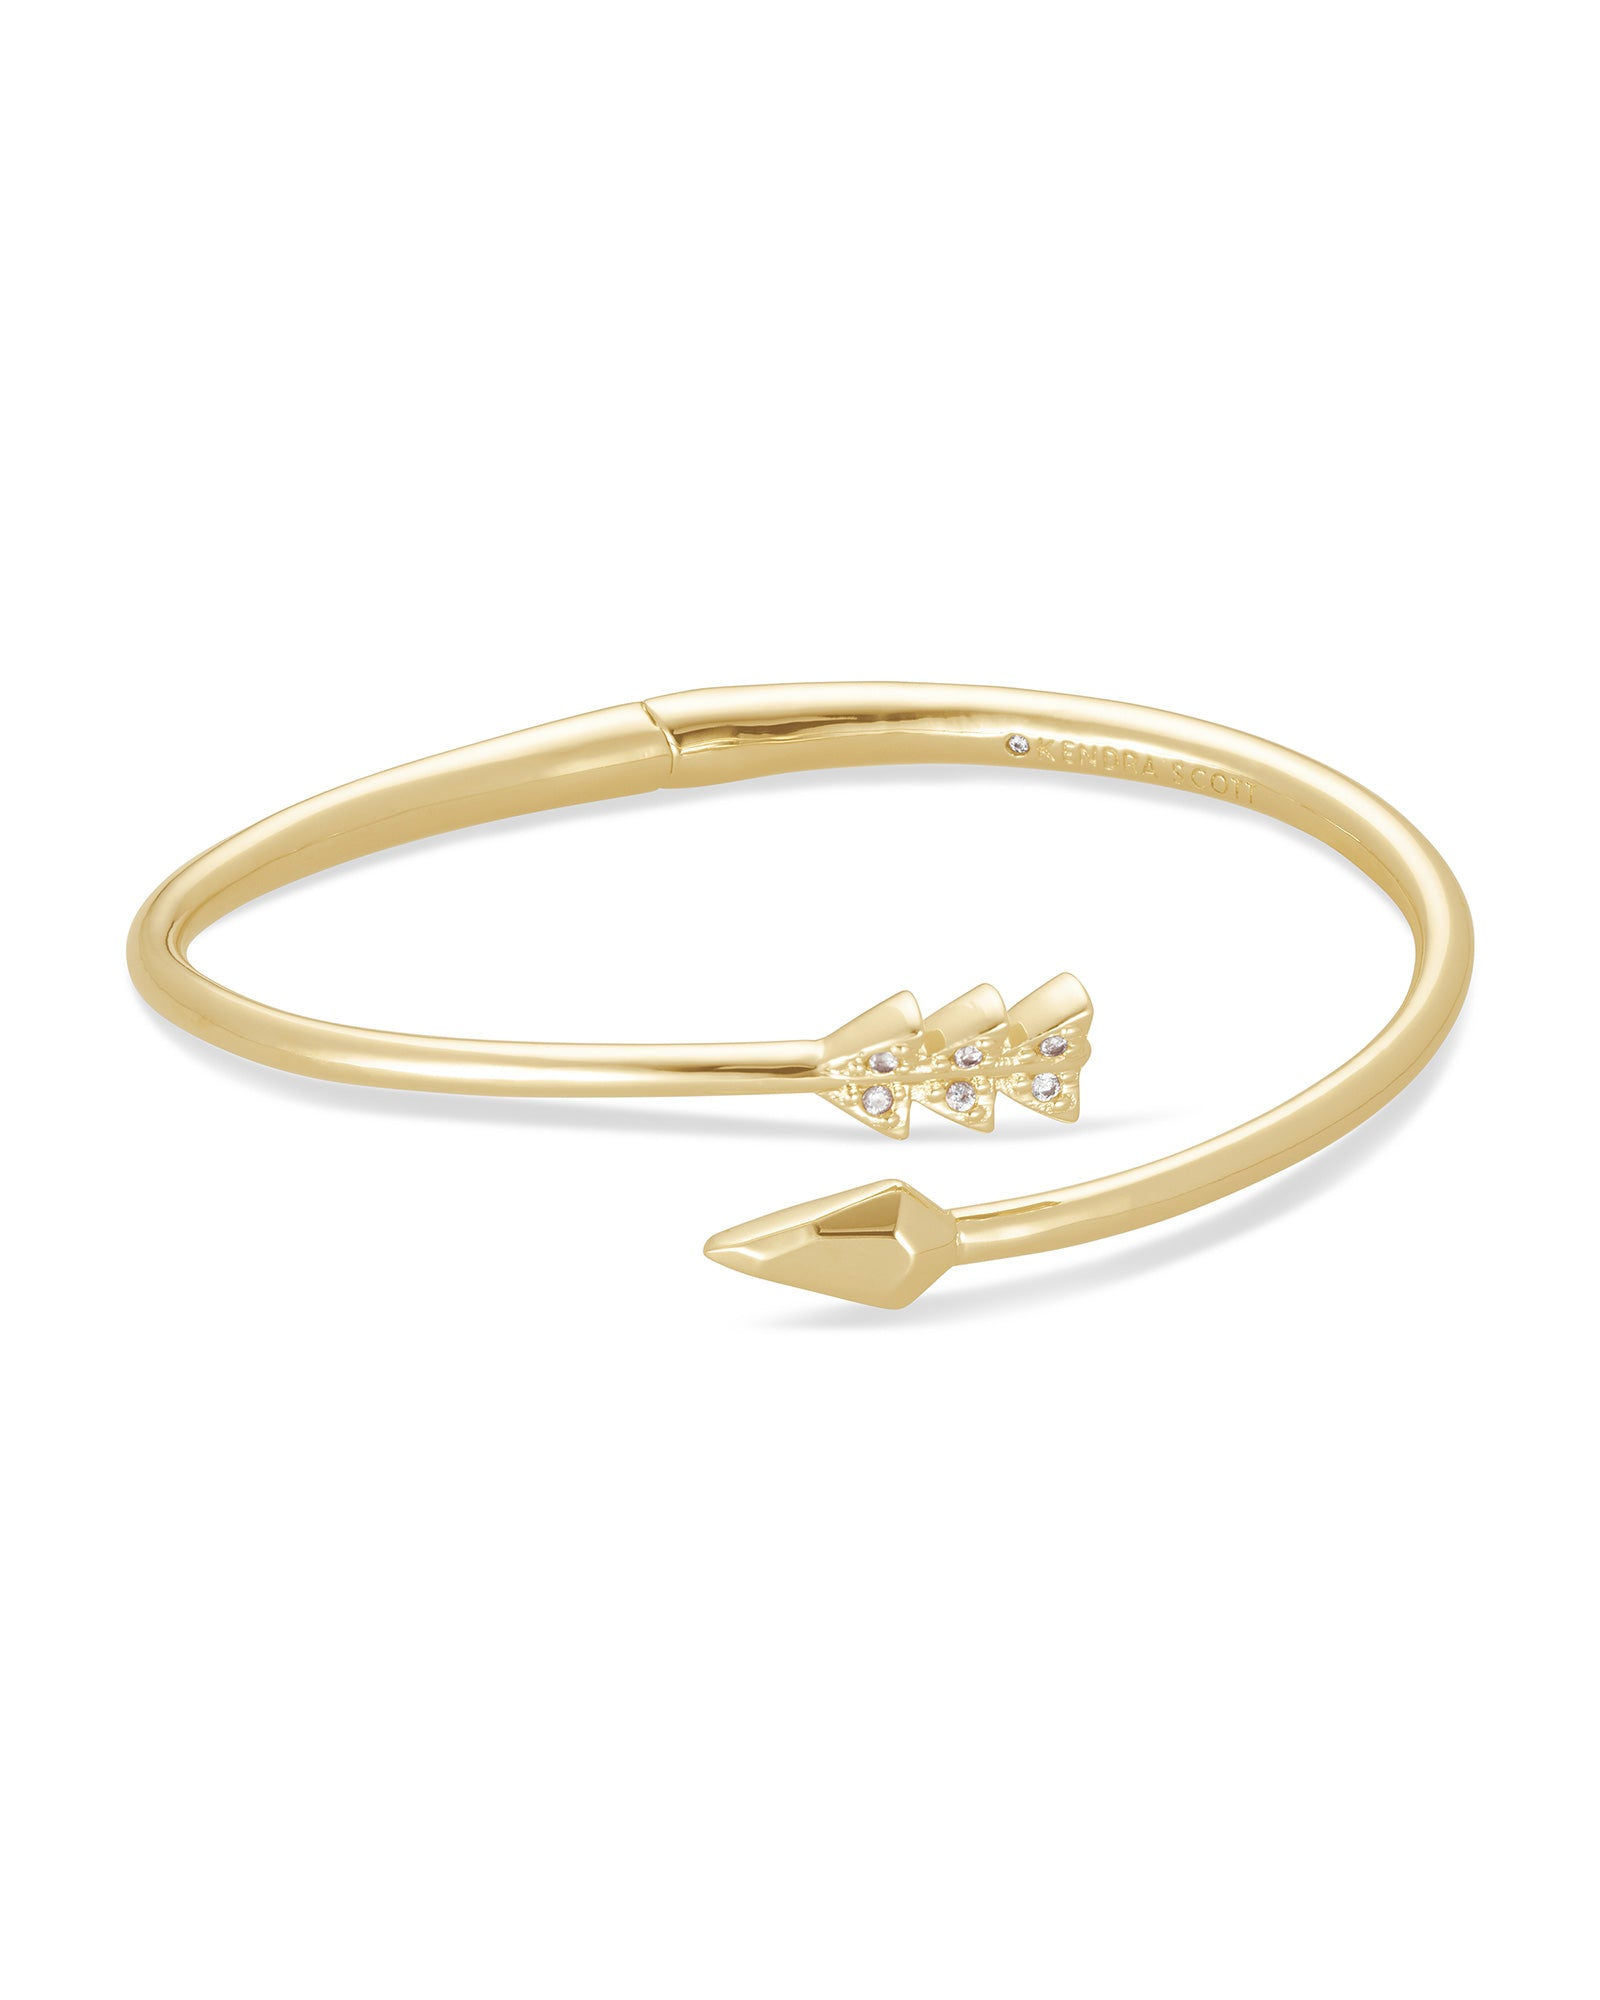 Zoey Gold Bangle Bracelet